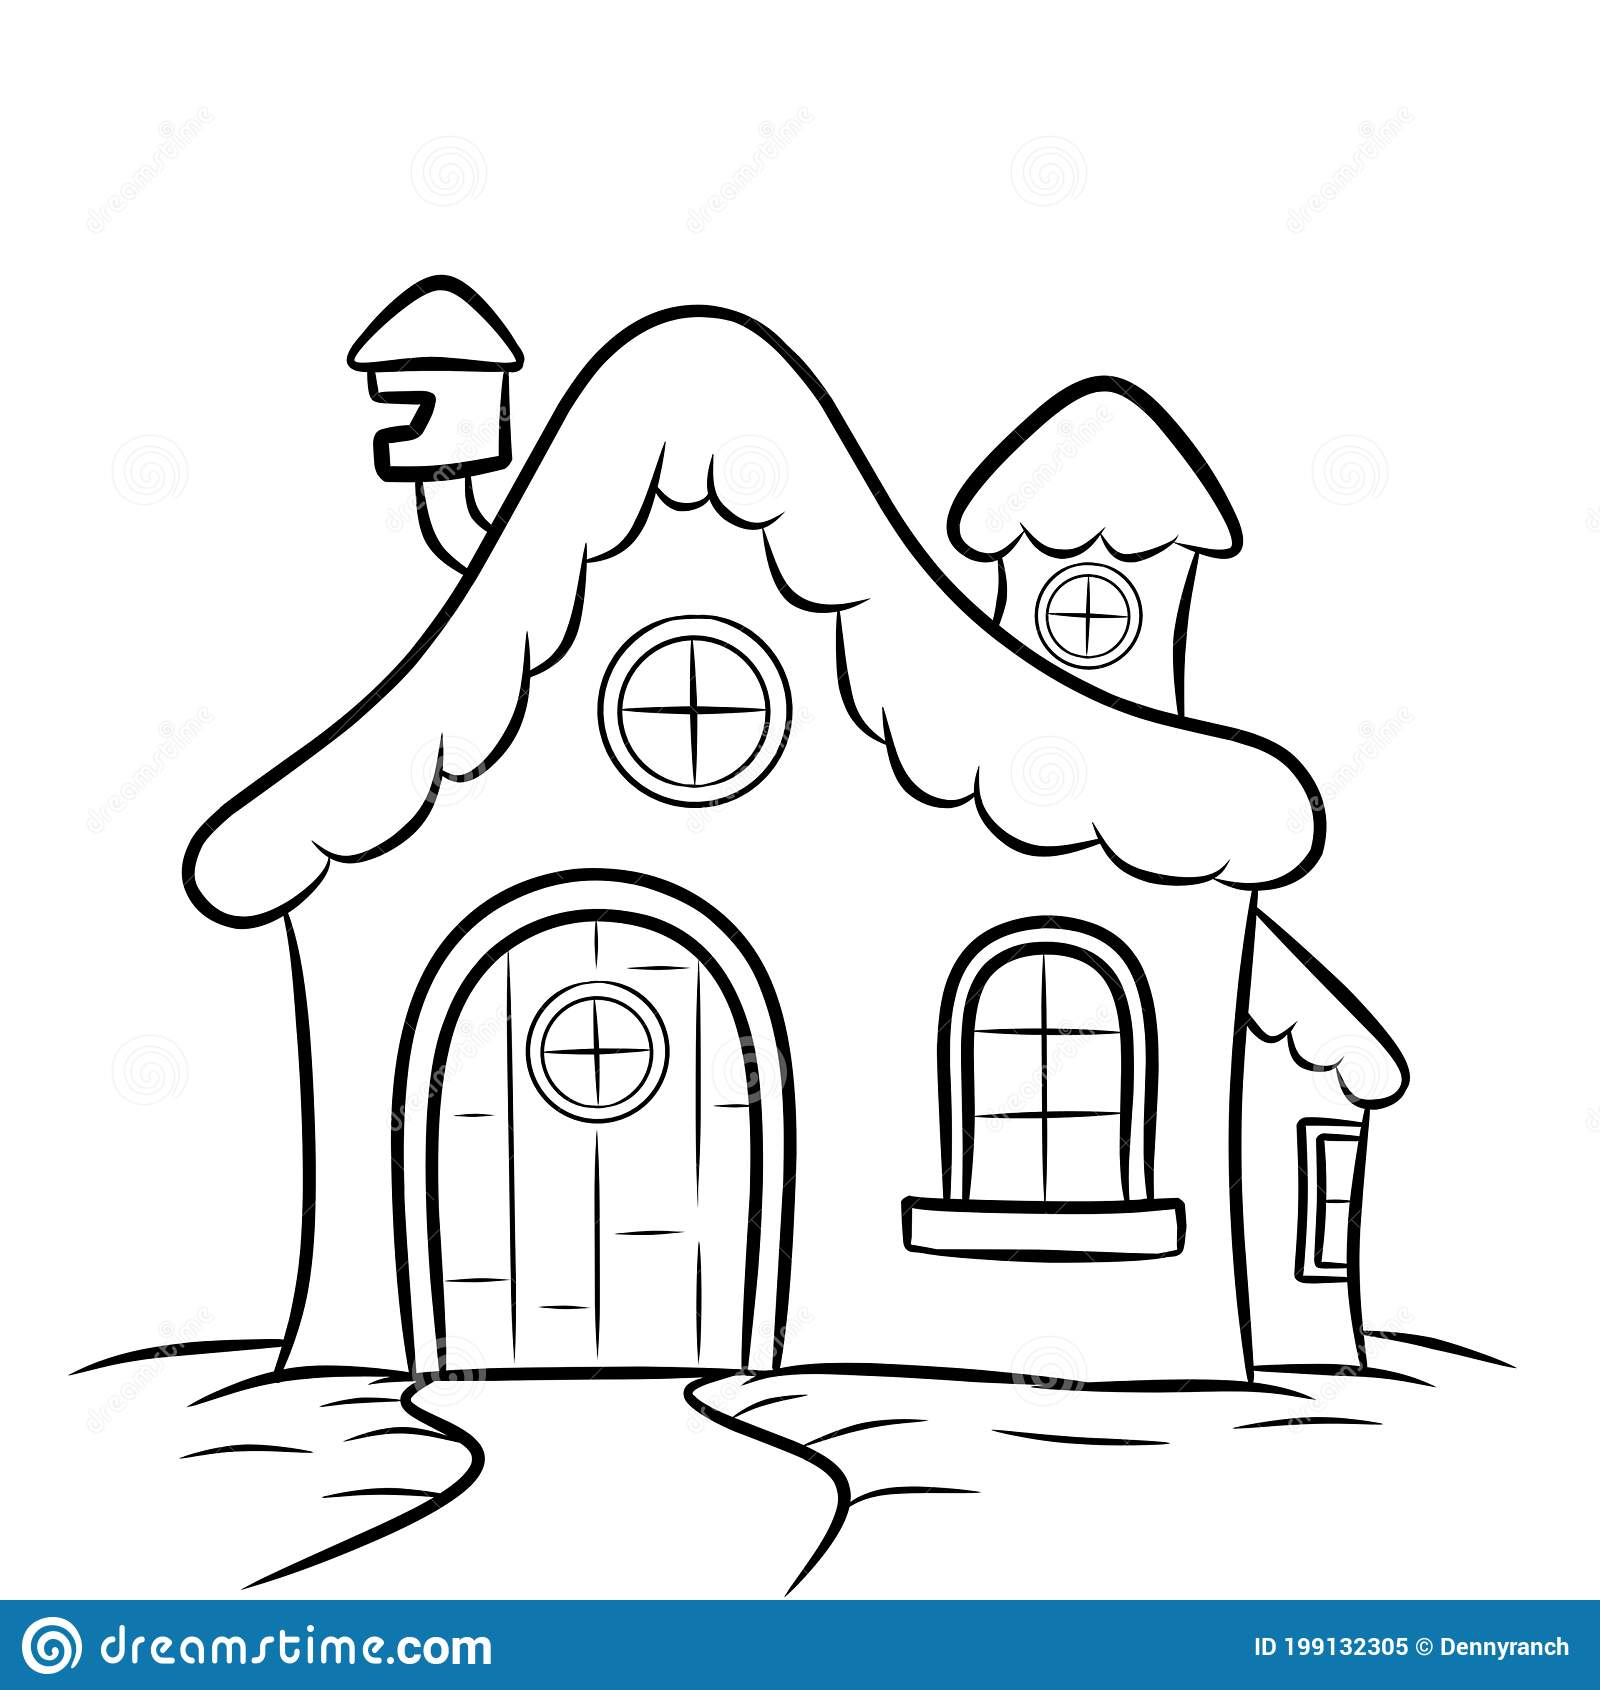 House Coloring Pages Stock Illustrations 310 House Coloring Pages Stock Illustrations Vectors Clipart Dreamstime